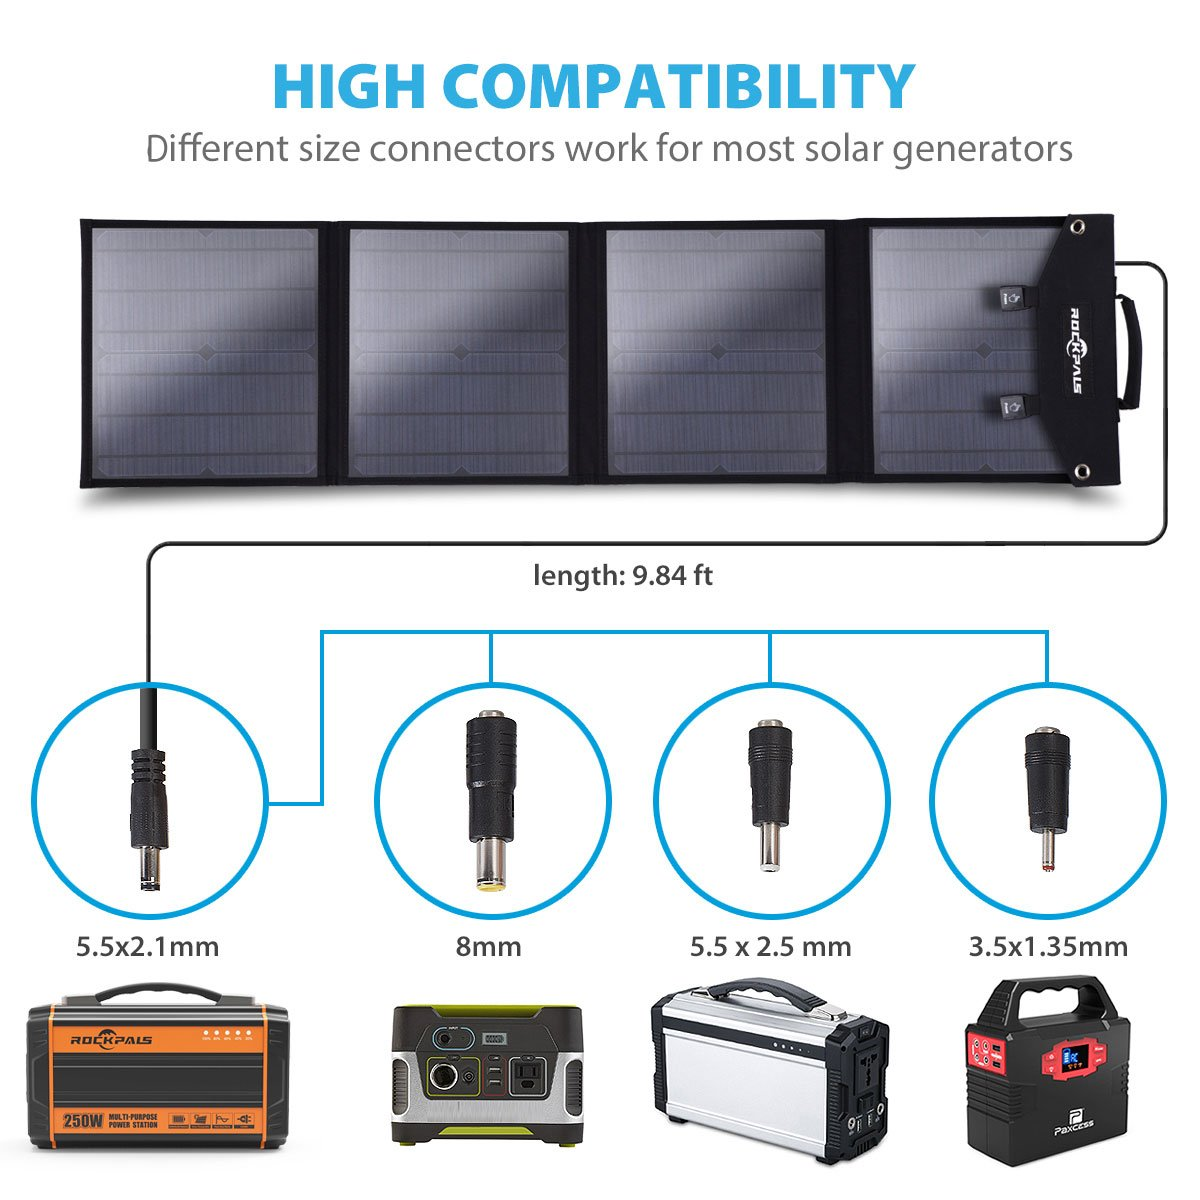 Rockpals Foldable 60W Solar Panel Charger for Suaoki Portable Generator/Goal Zero Yeti 100/150/400 Power Station/Paxcess Battery Pack/USB Devices, QC3.0 USB Ports by Rockpals (Image #2)